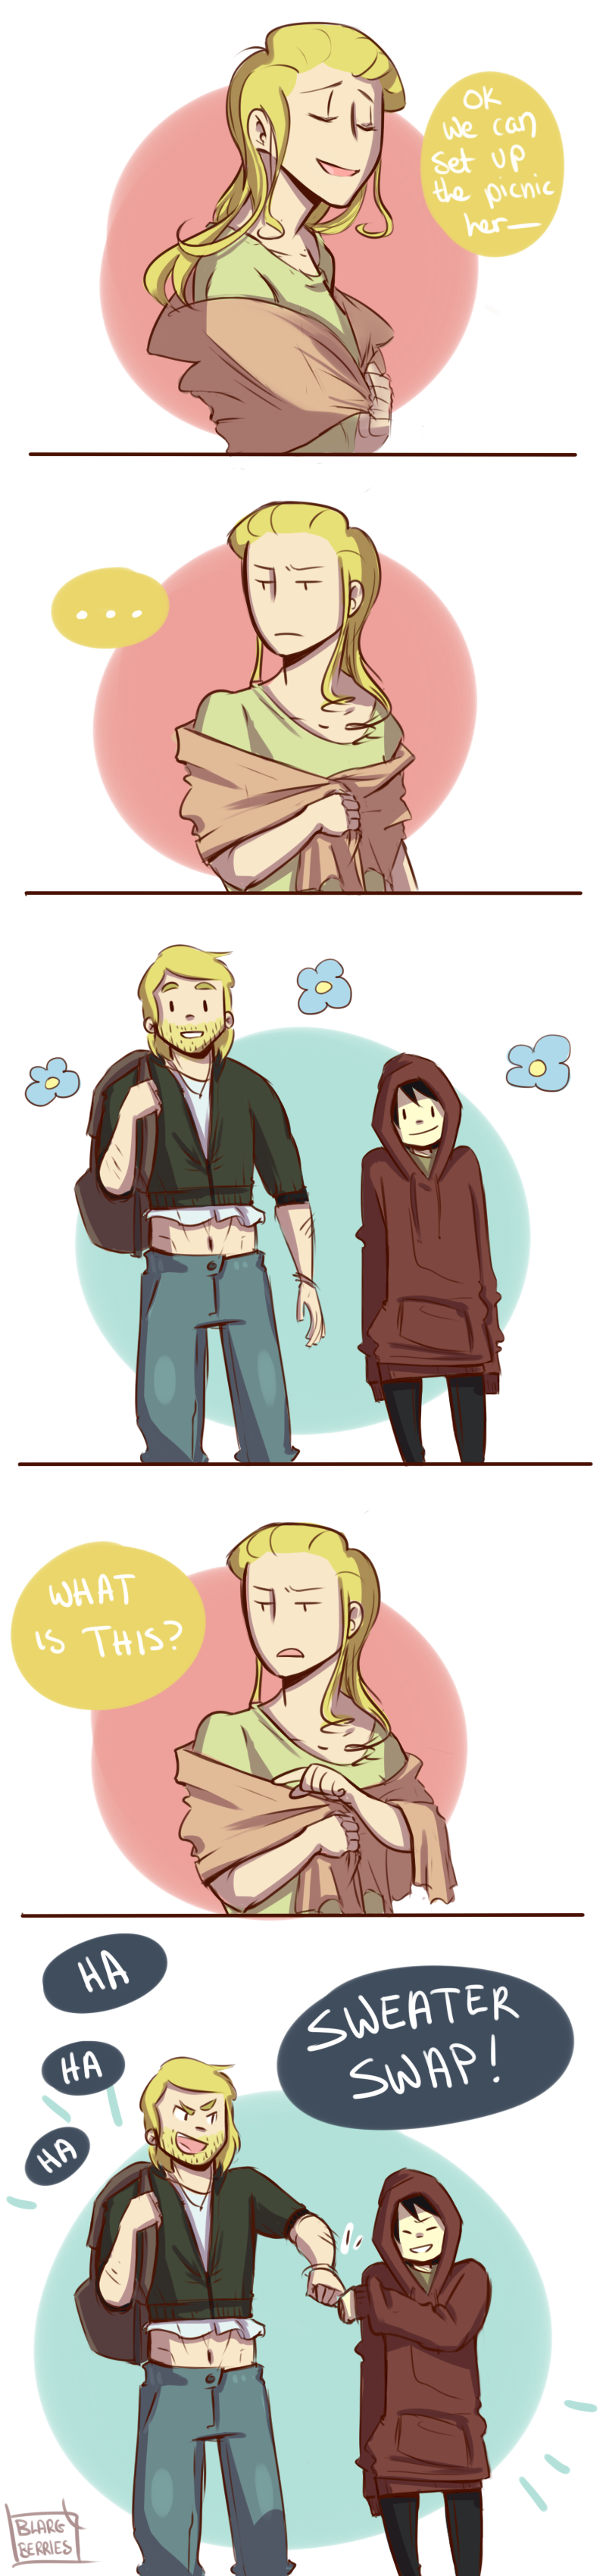 Sweater Swap by blargberries